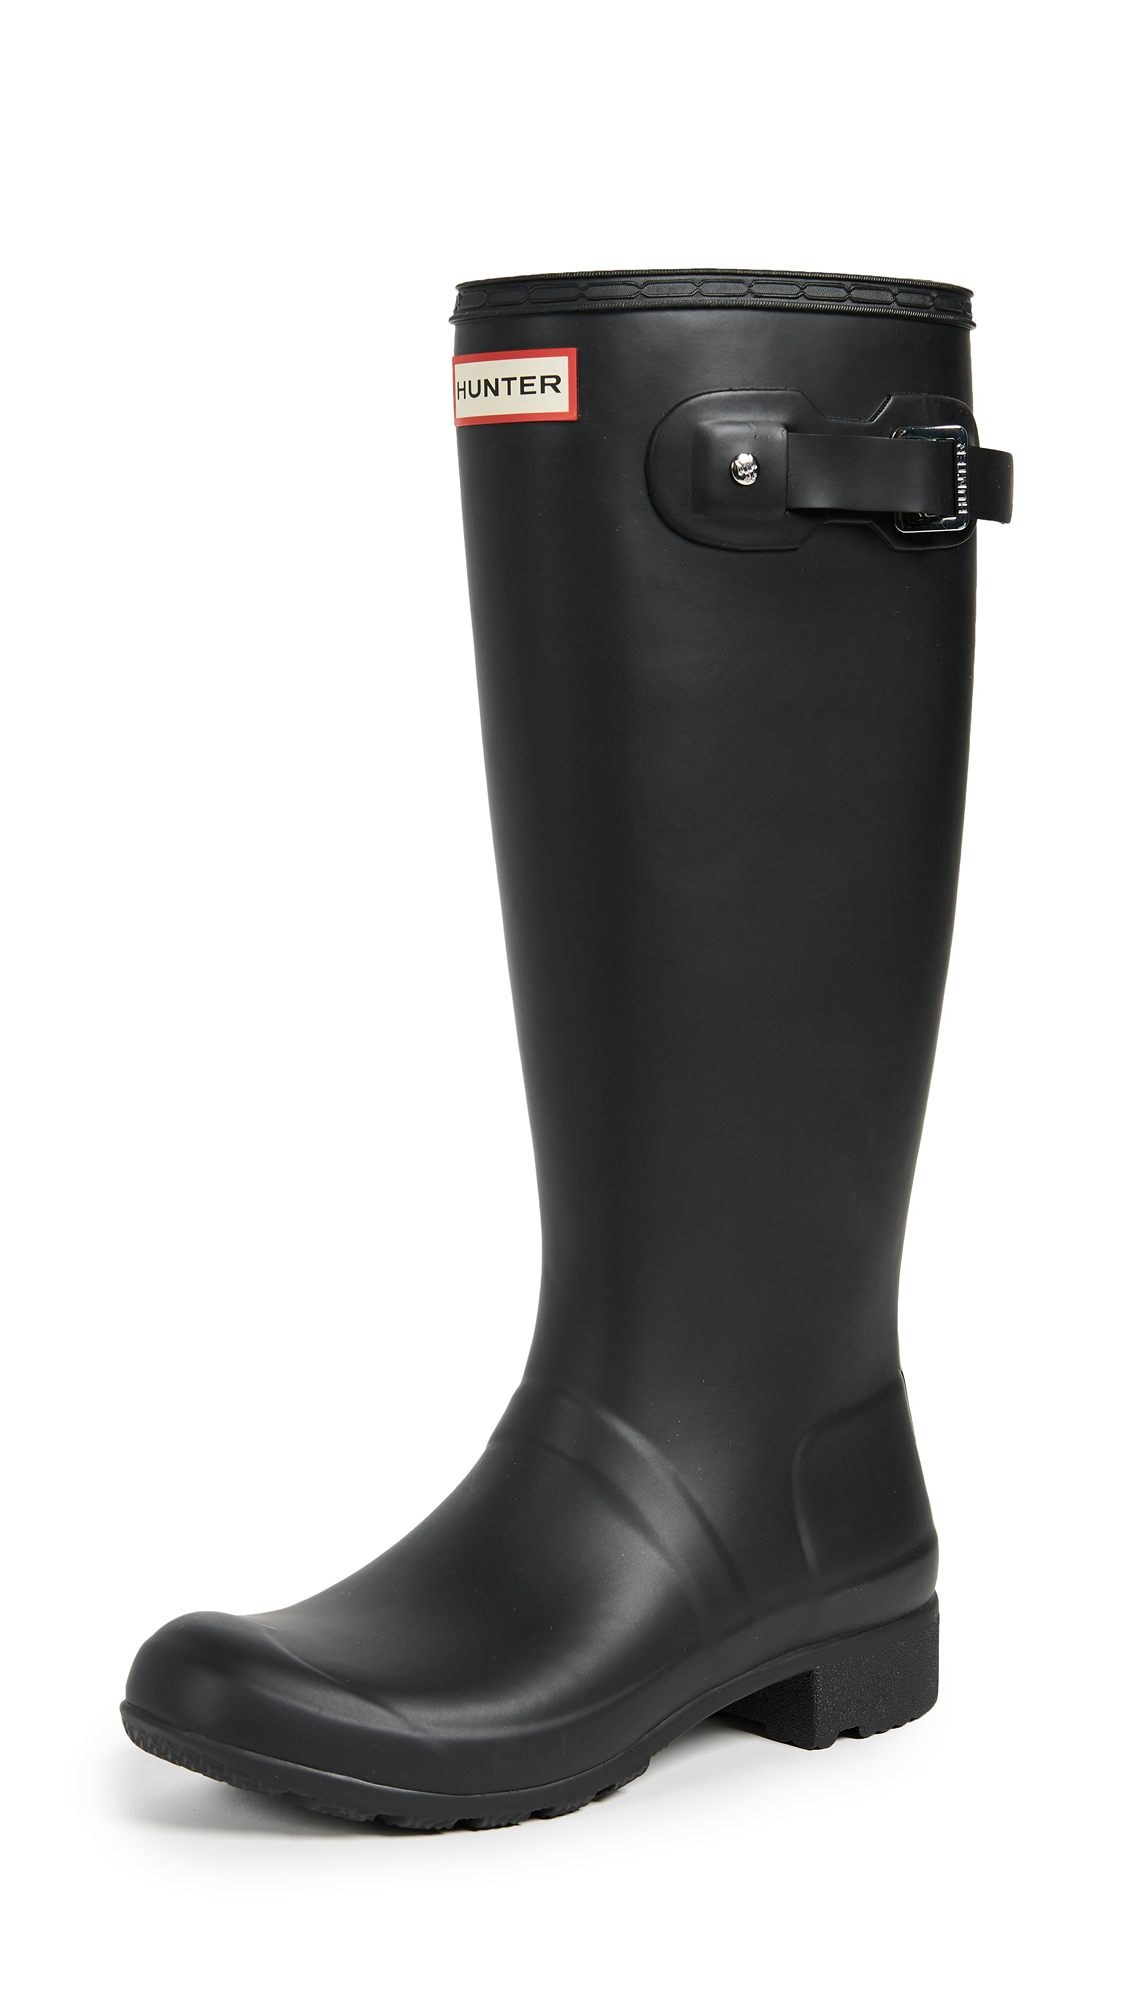 Hunter Boots Original Tour Boots - Black